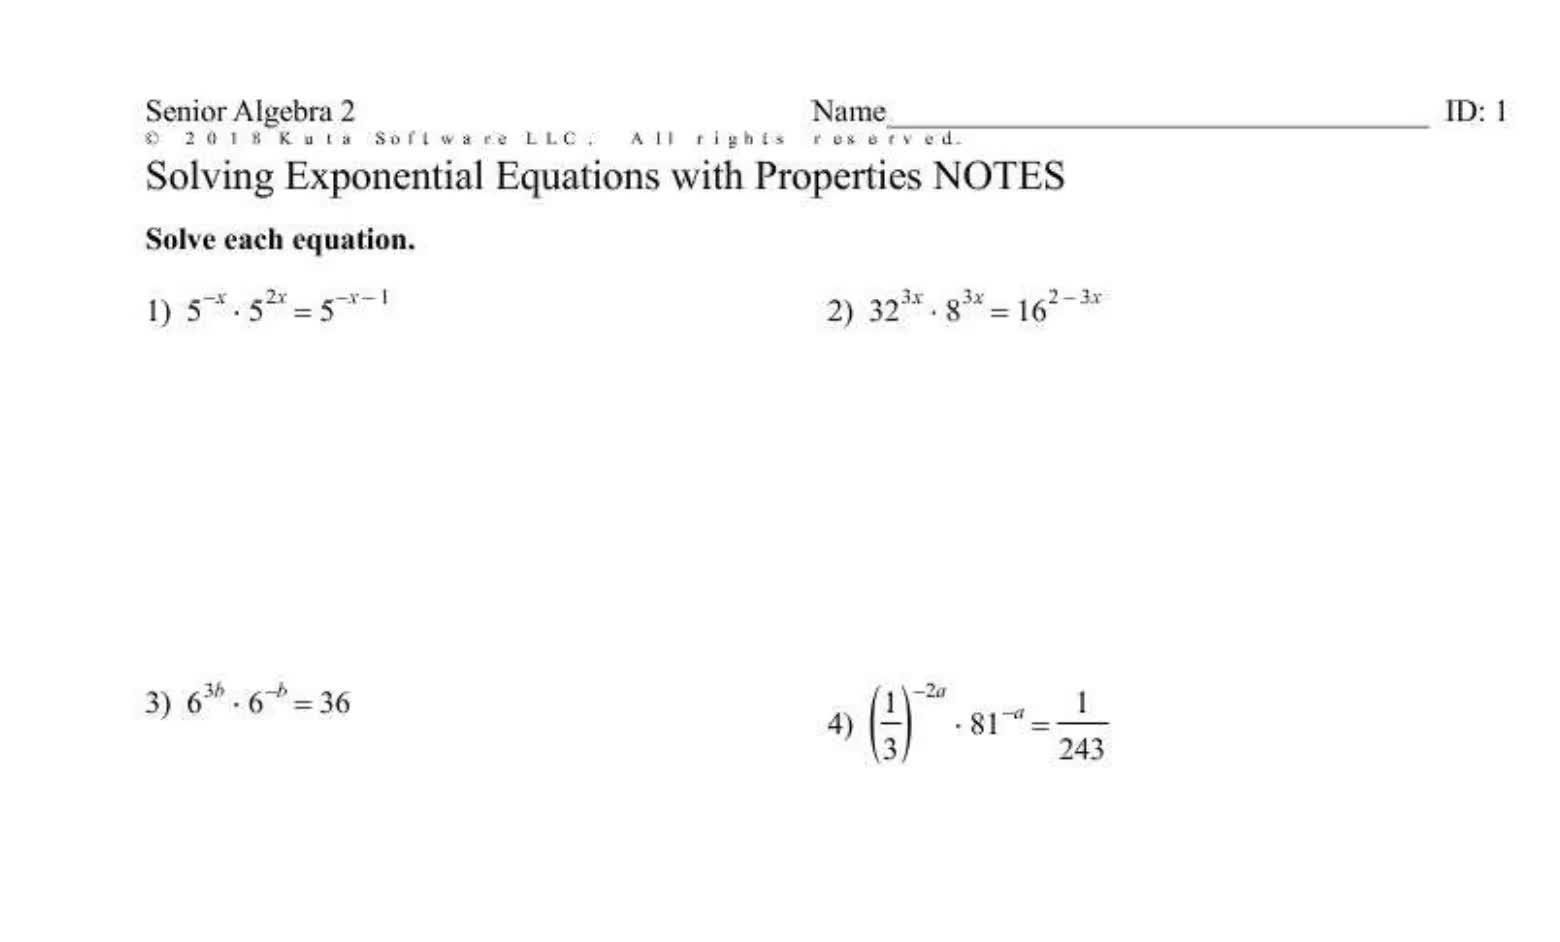 Solving Exponential Equations with Properties (SR)